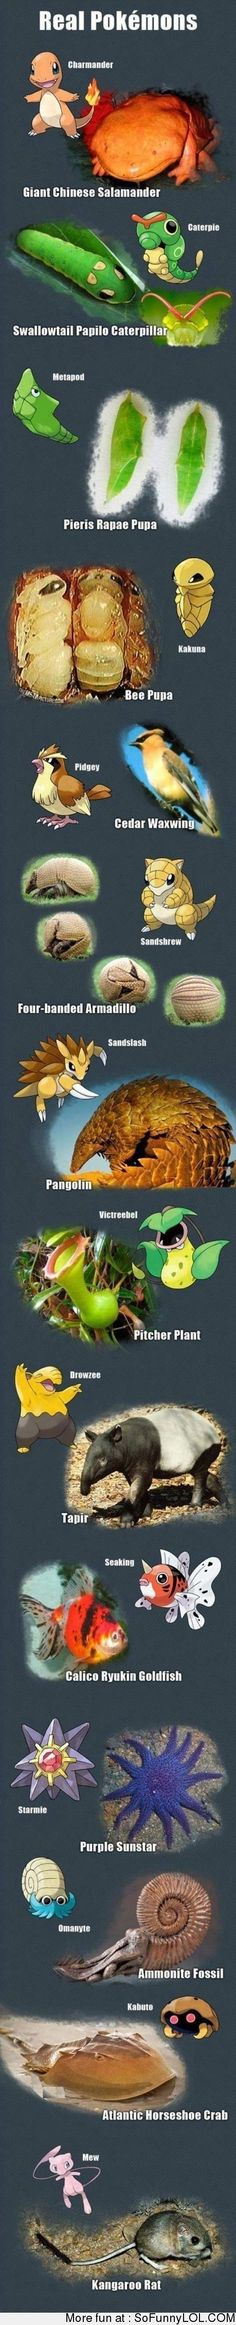 Real Life Pokemon